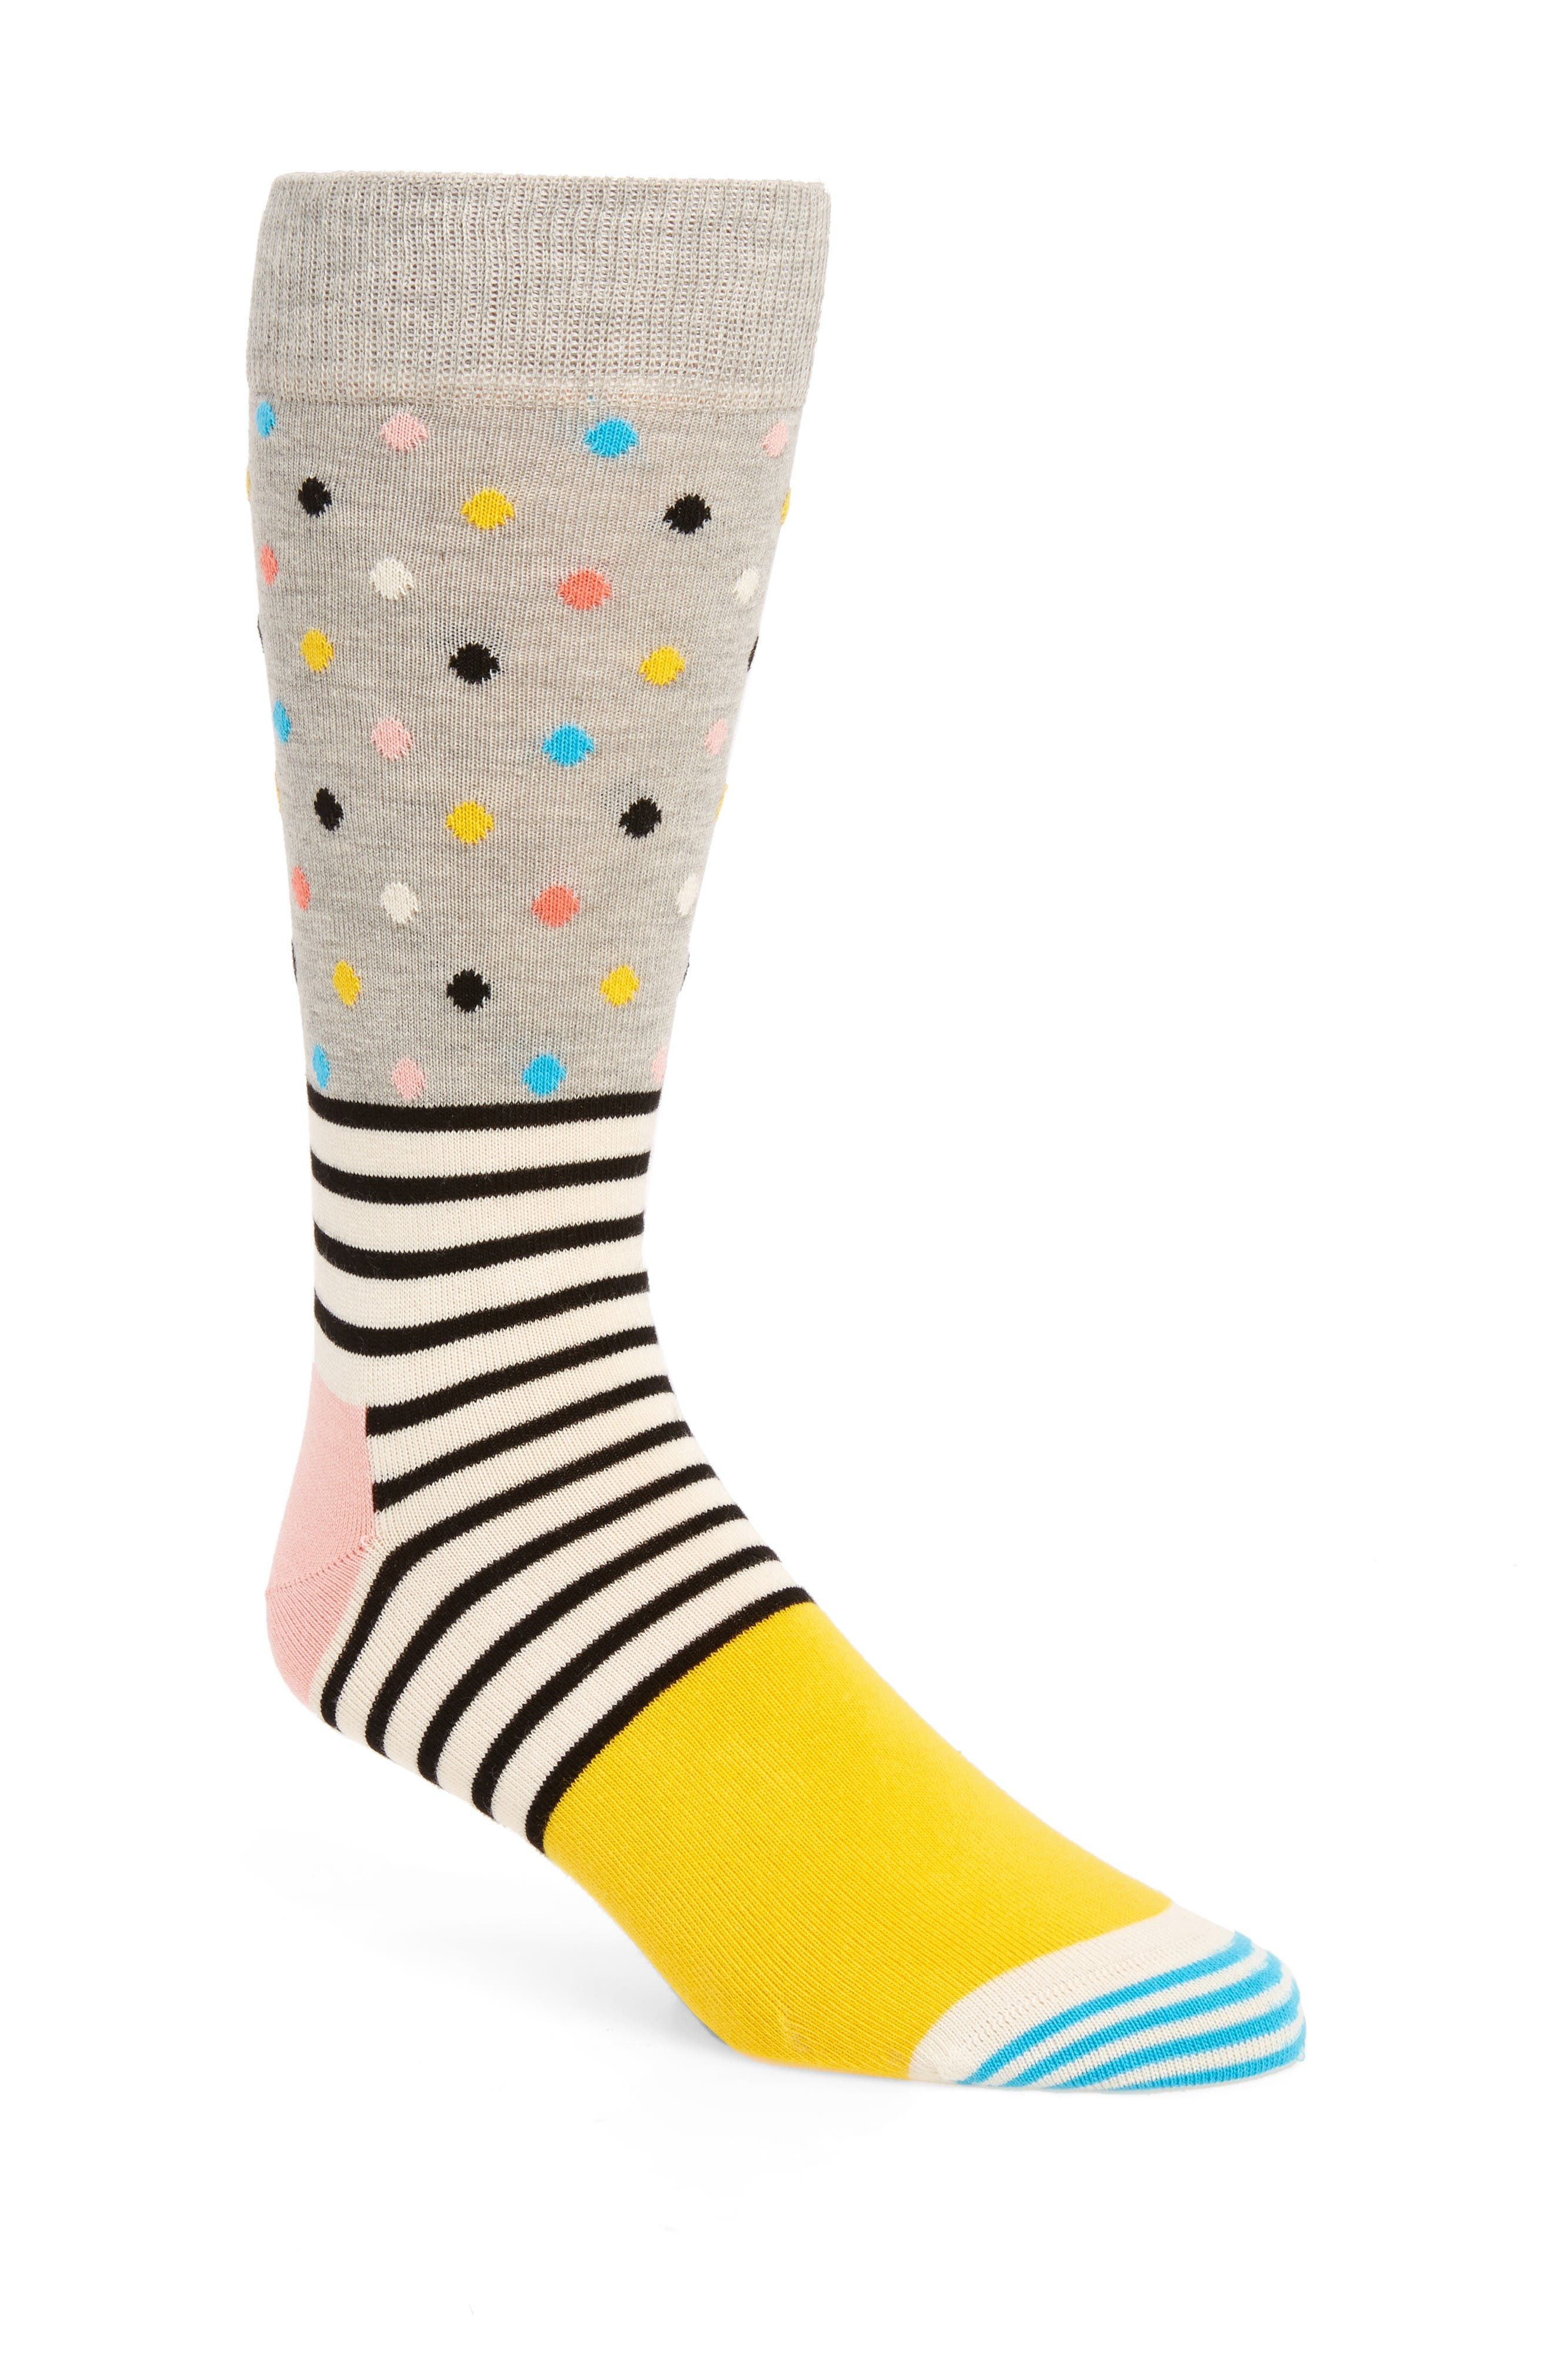 Stripe & Dot Socks,                             Main thumbnail 1, color,                             Light Pastel Grey